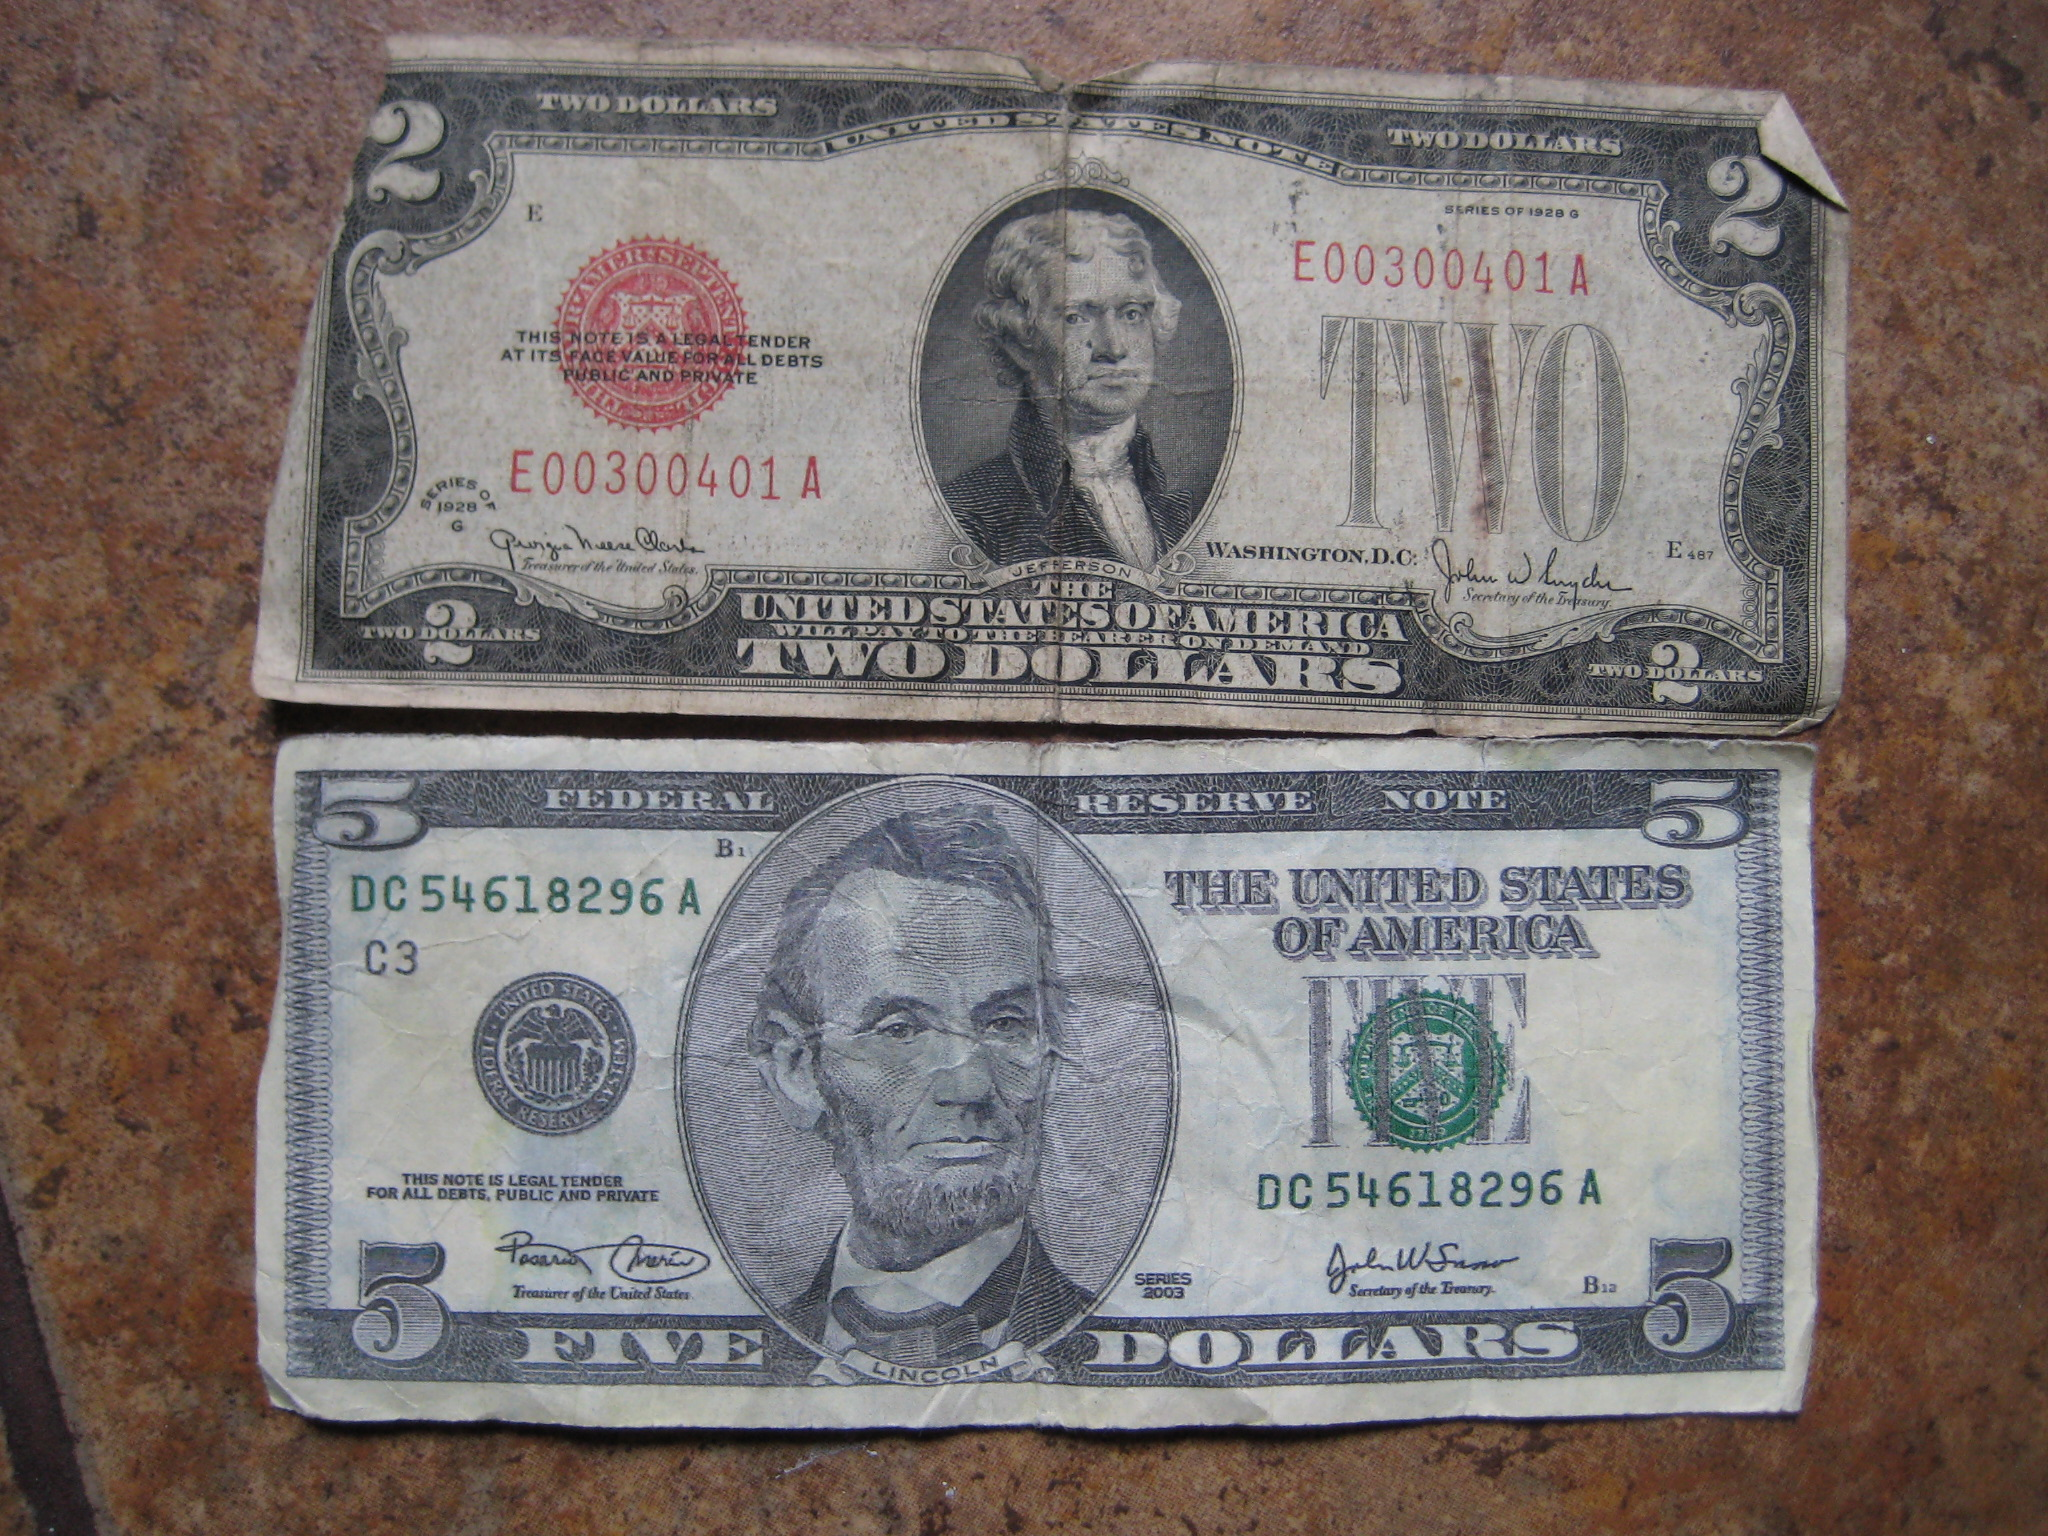 With Series 1928 Two Dollar Bill